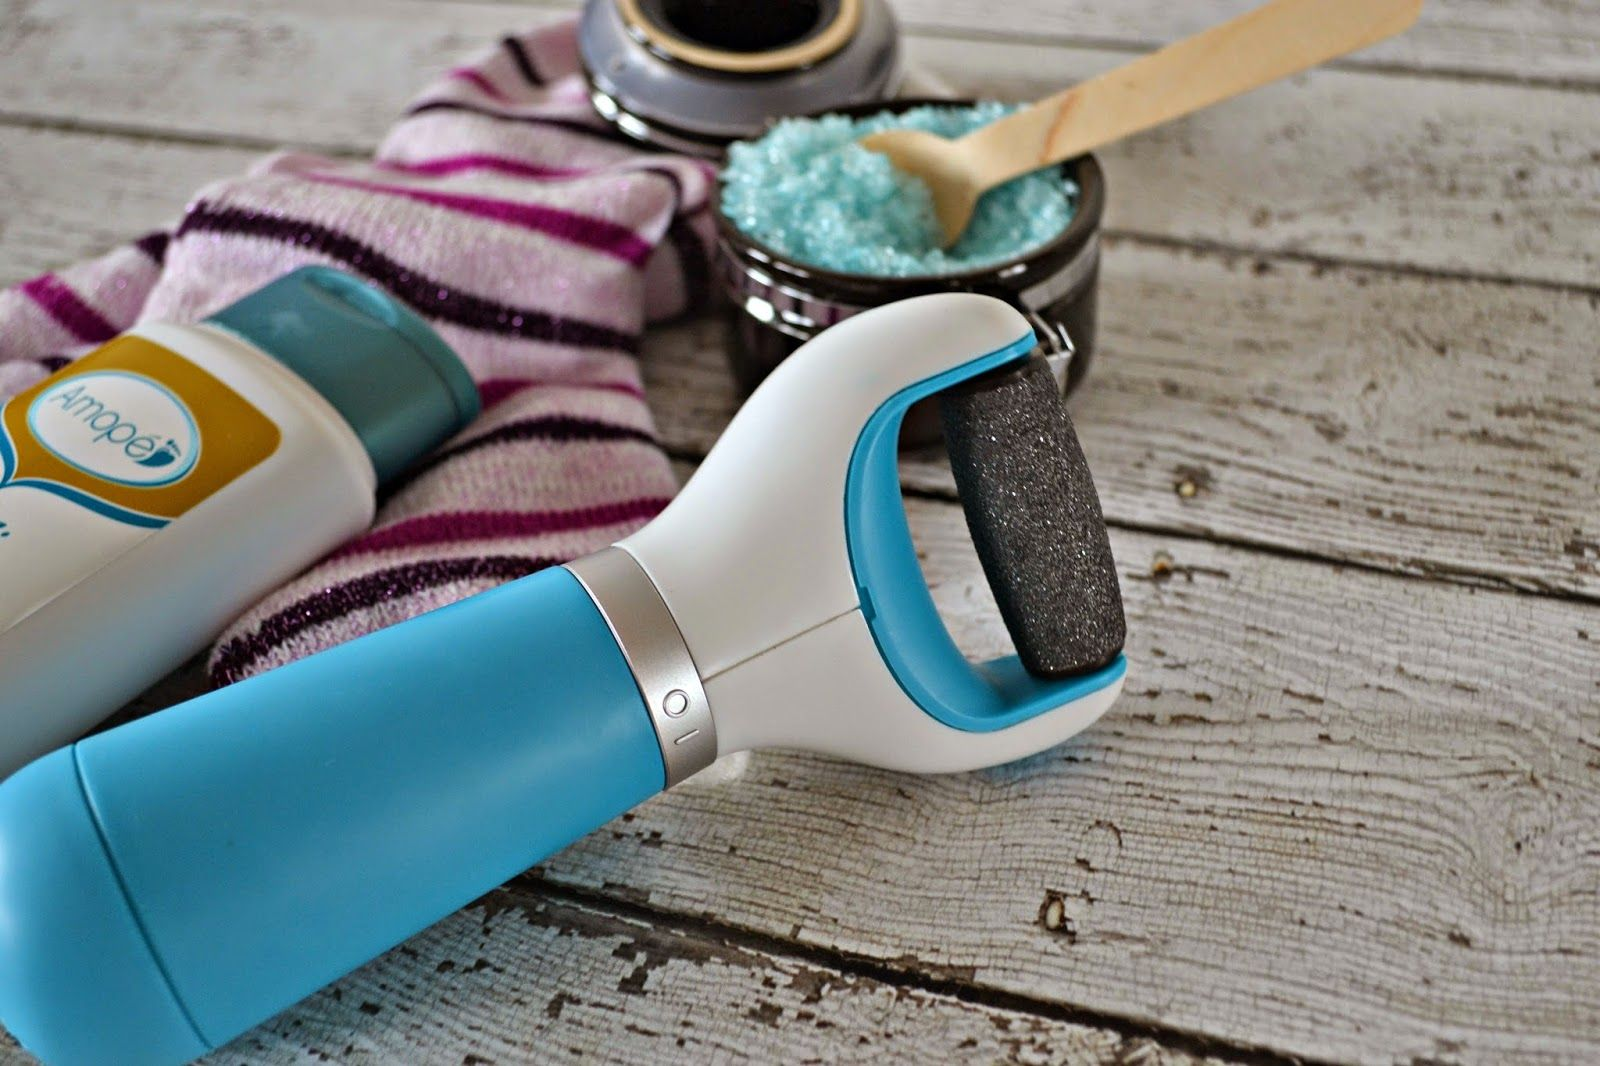 Winter is here!  This means your feet are going to need a little TLC.  Check out these easy Foot Care Tips for Winter and a fun new gadget called Amopé Pedi Perfect you can pick up at @Target.  Perfect way to keep your feet happy and healthy!!  #RespectUrFeet  #Shop #CollectiveBias #Target